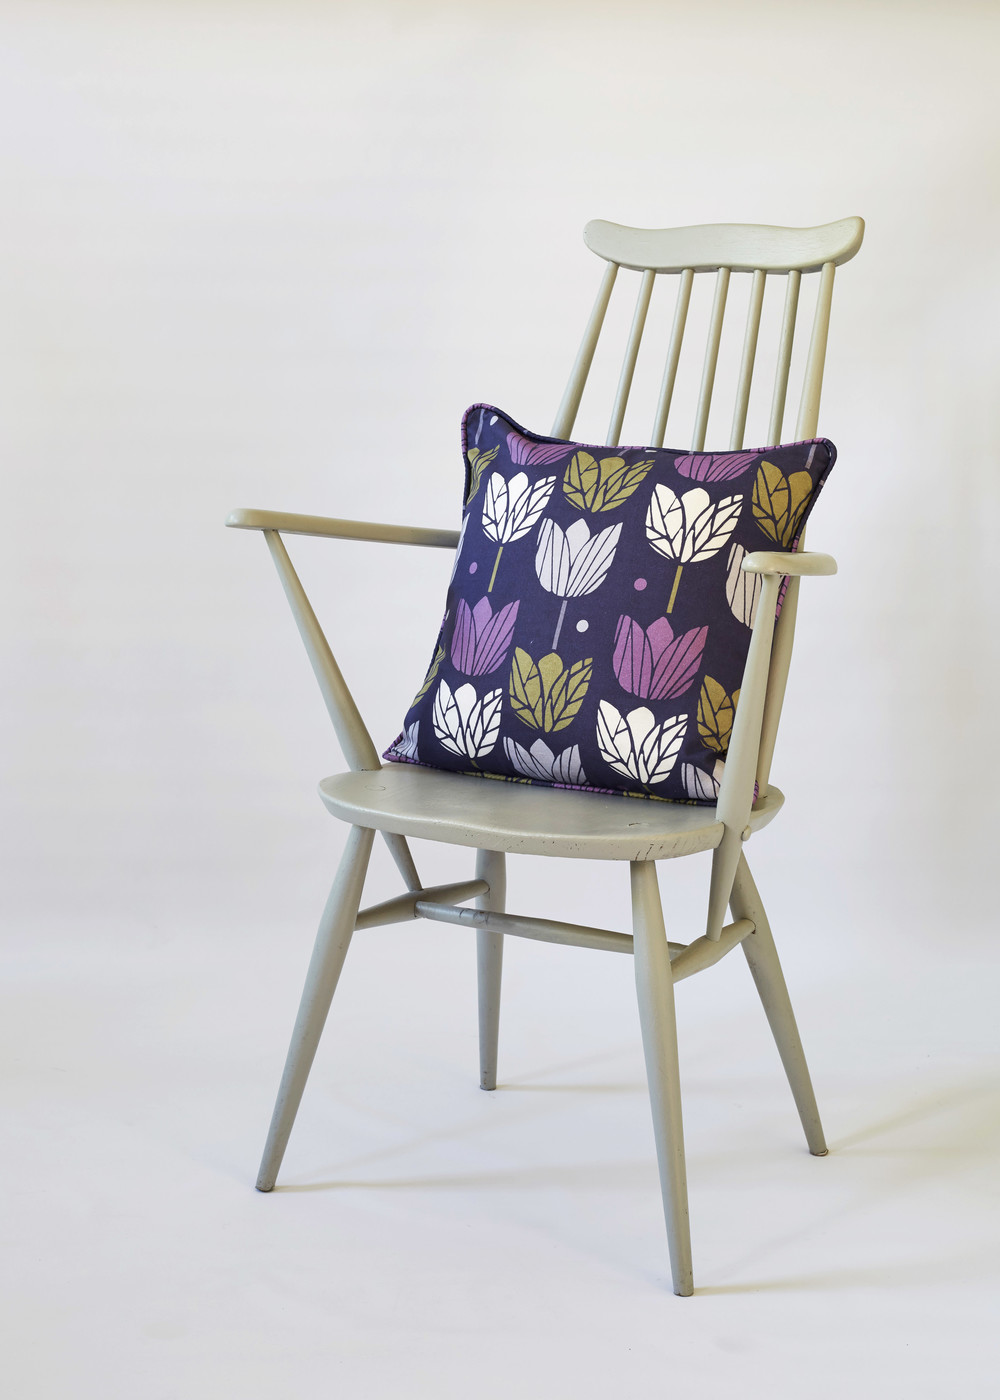 cushion in purple tulips fabric.jpg